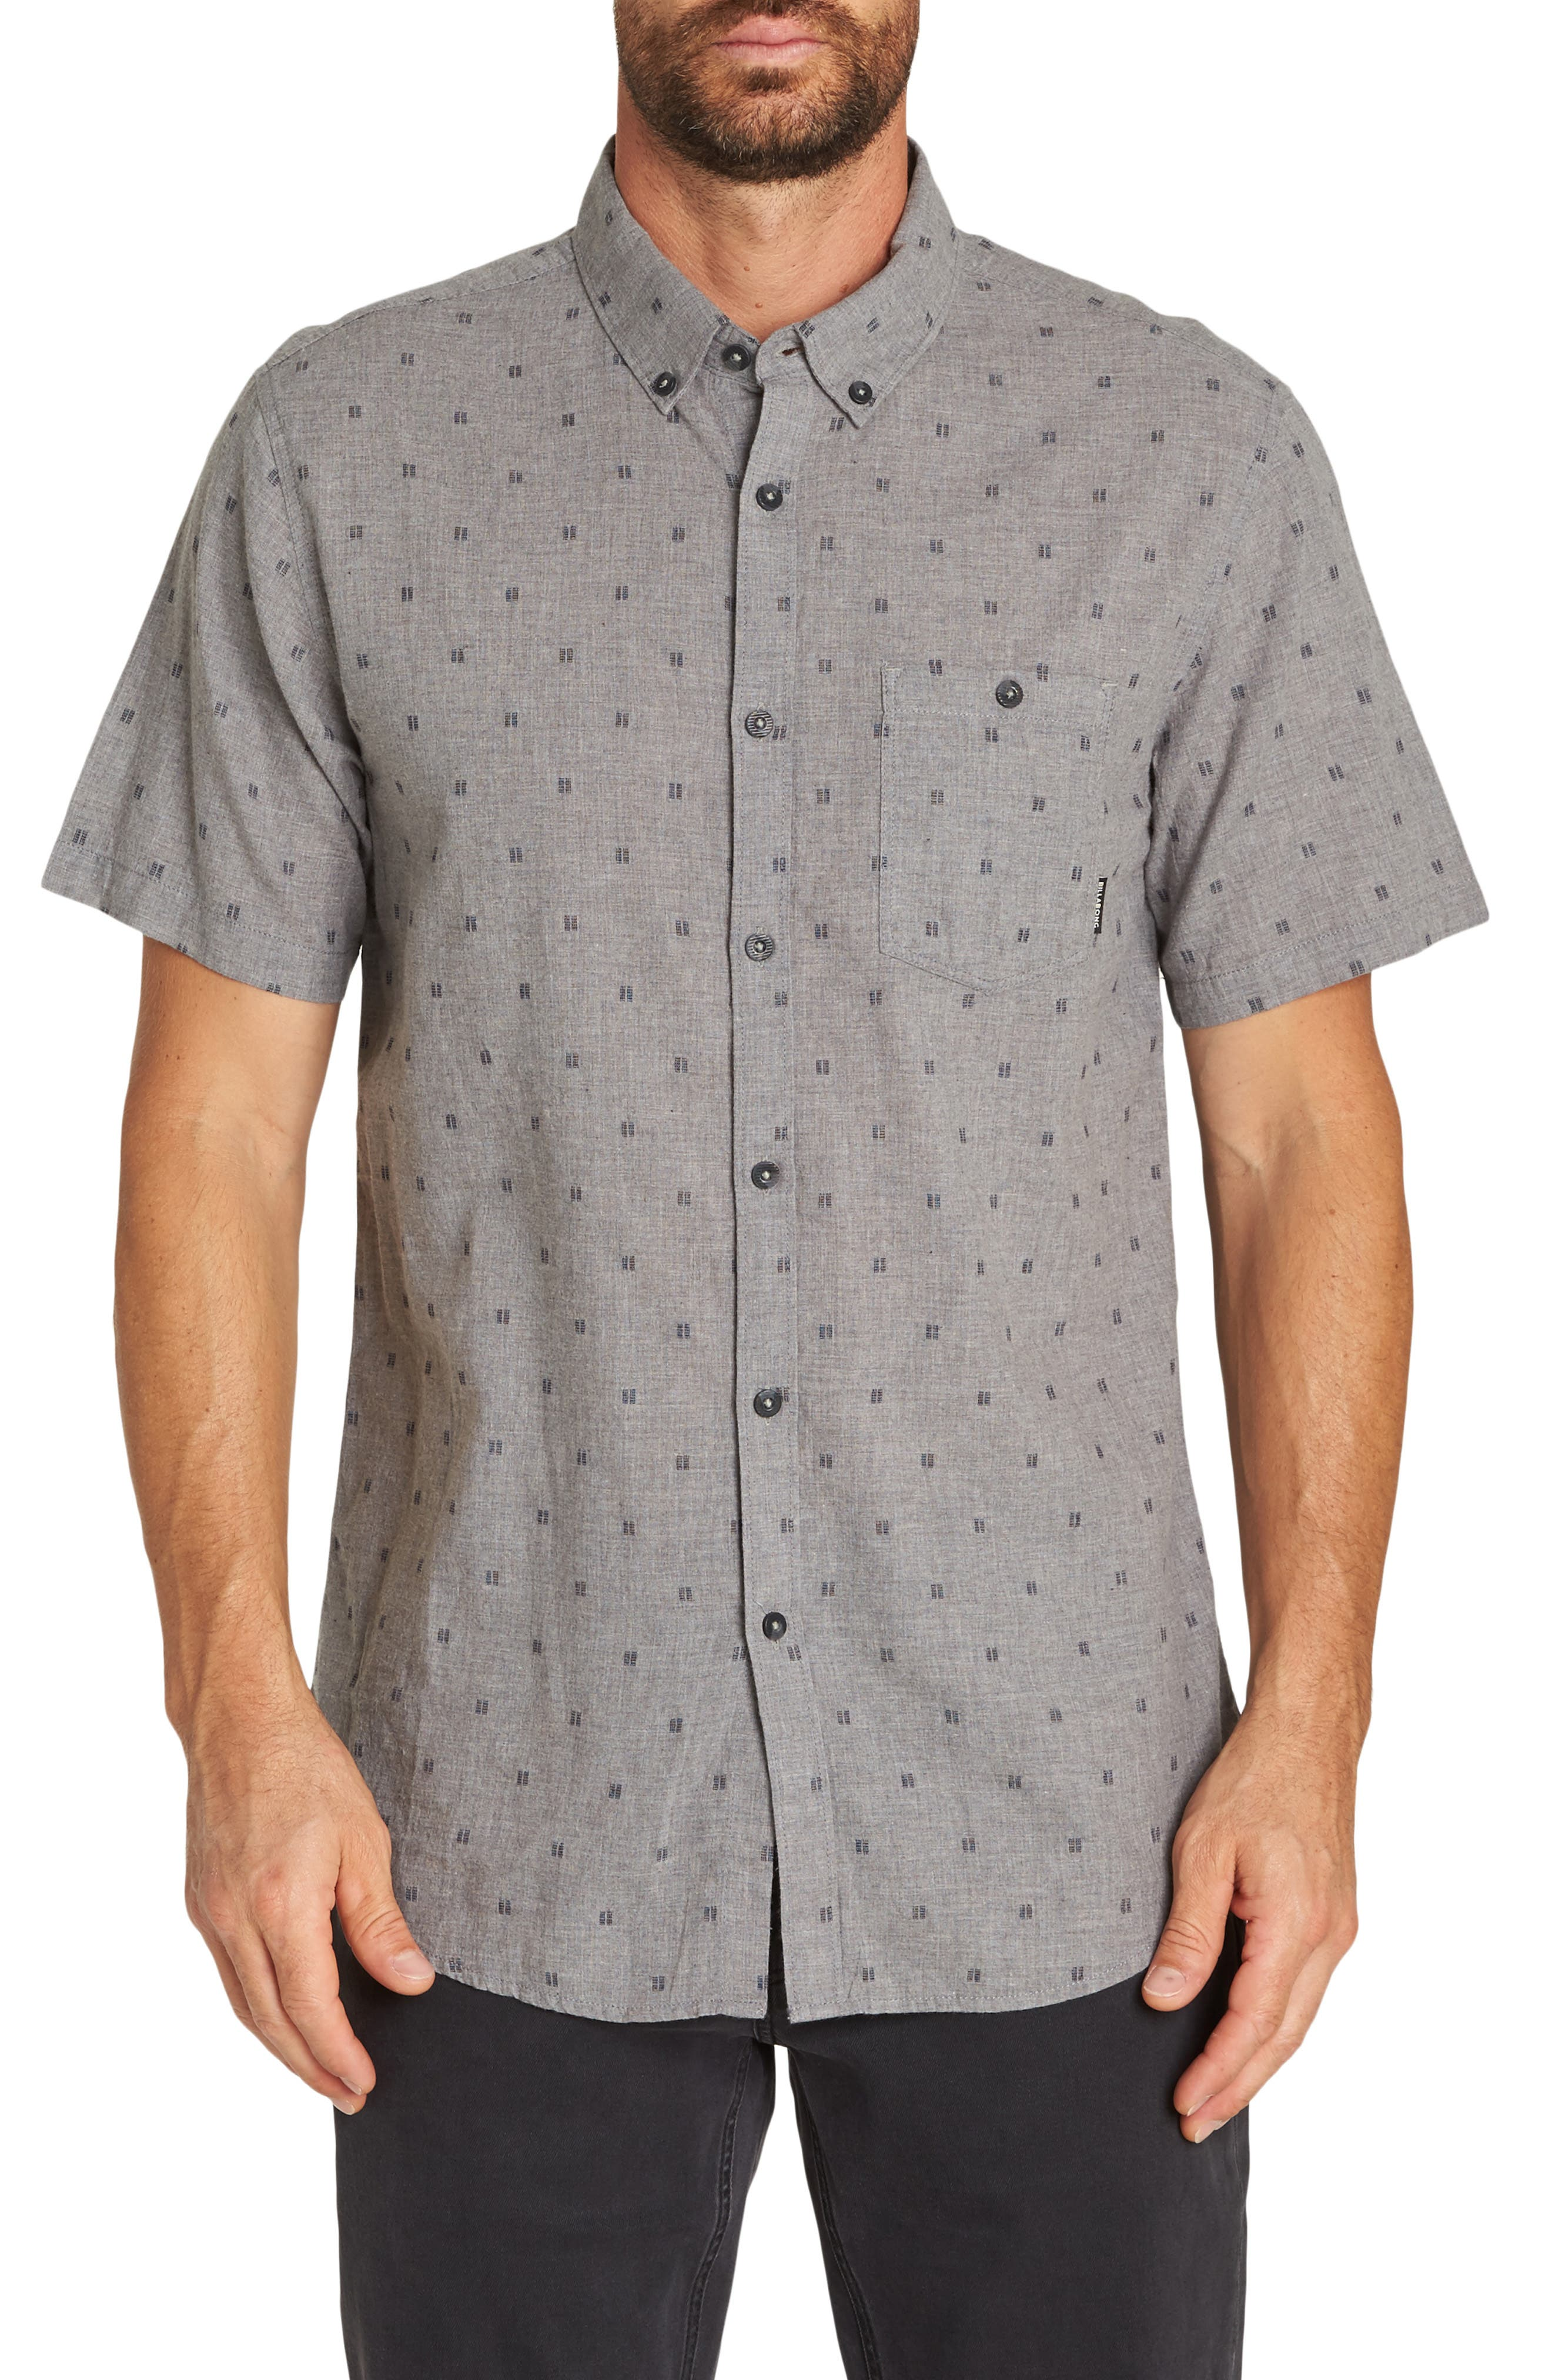 All Day Jacquard Shirt,                         Main,                         color, PEWTER HEATHER